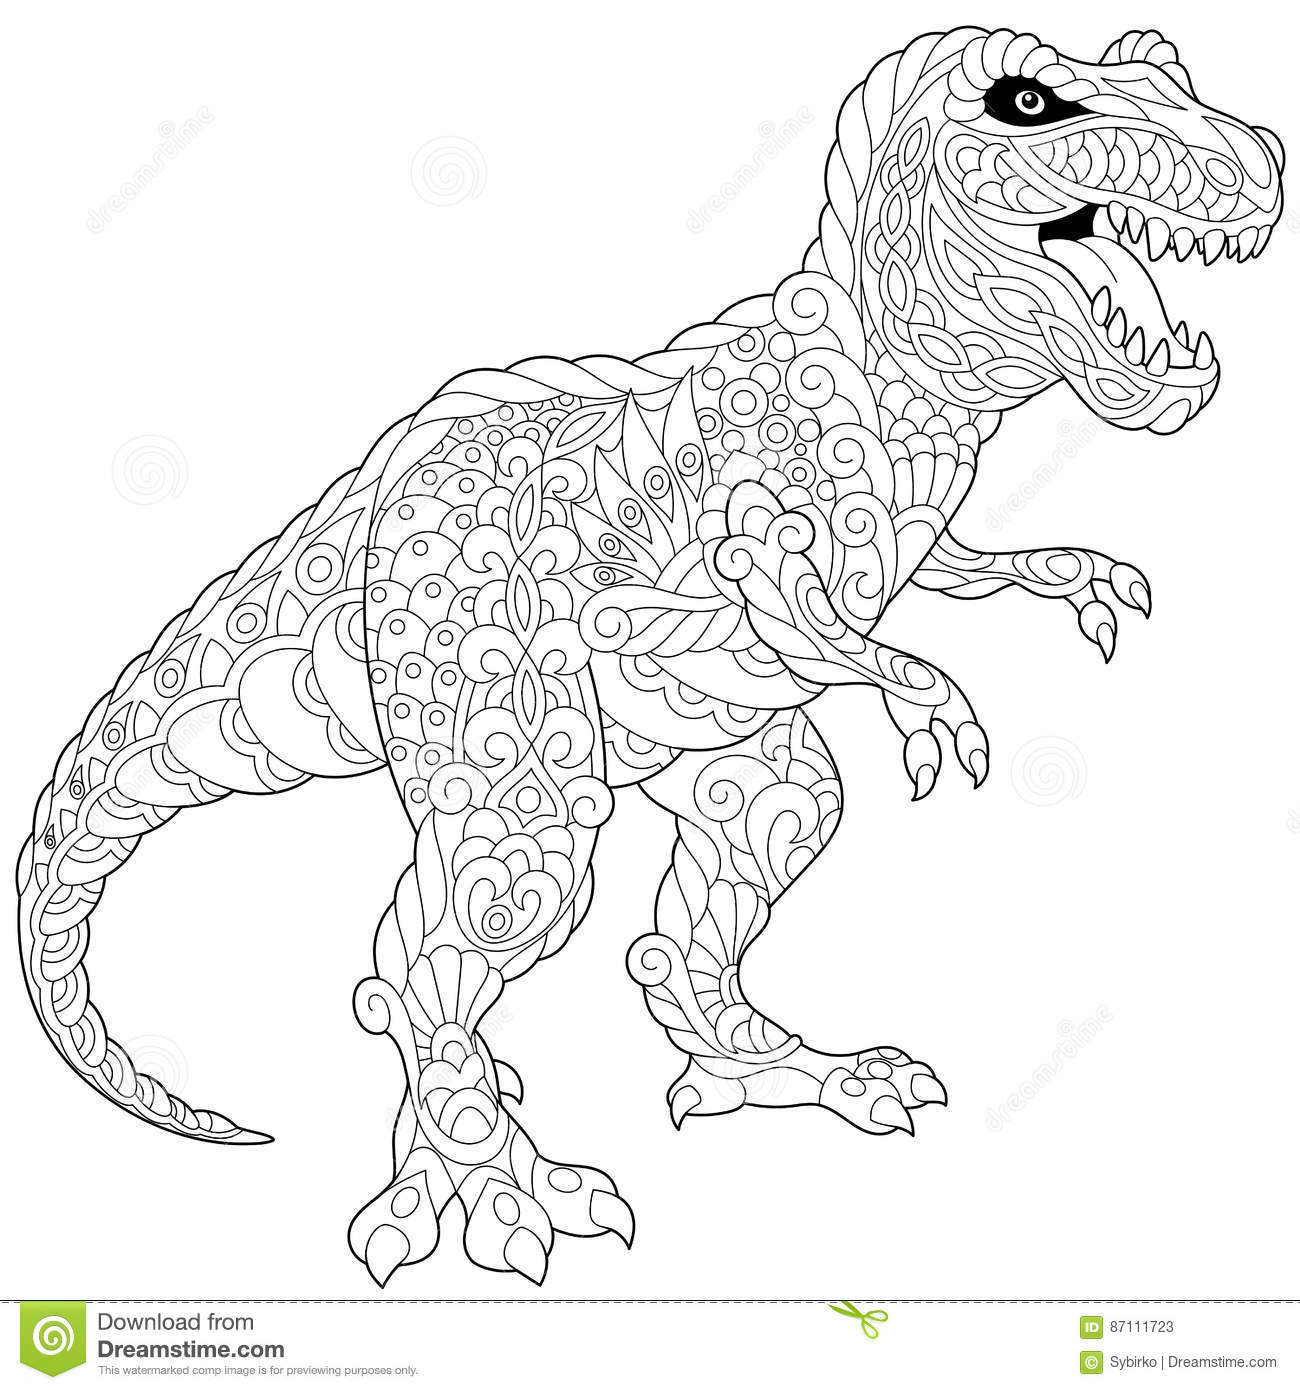 Tyrannosaurus Coloring Book For Adults Vector Cartoon